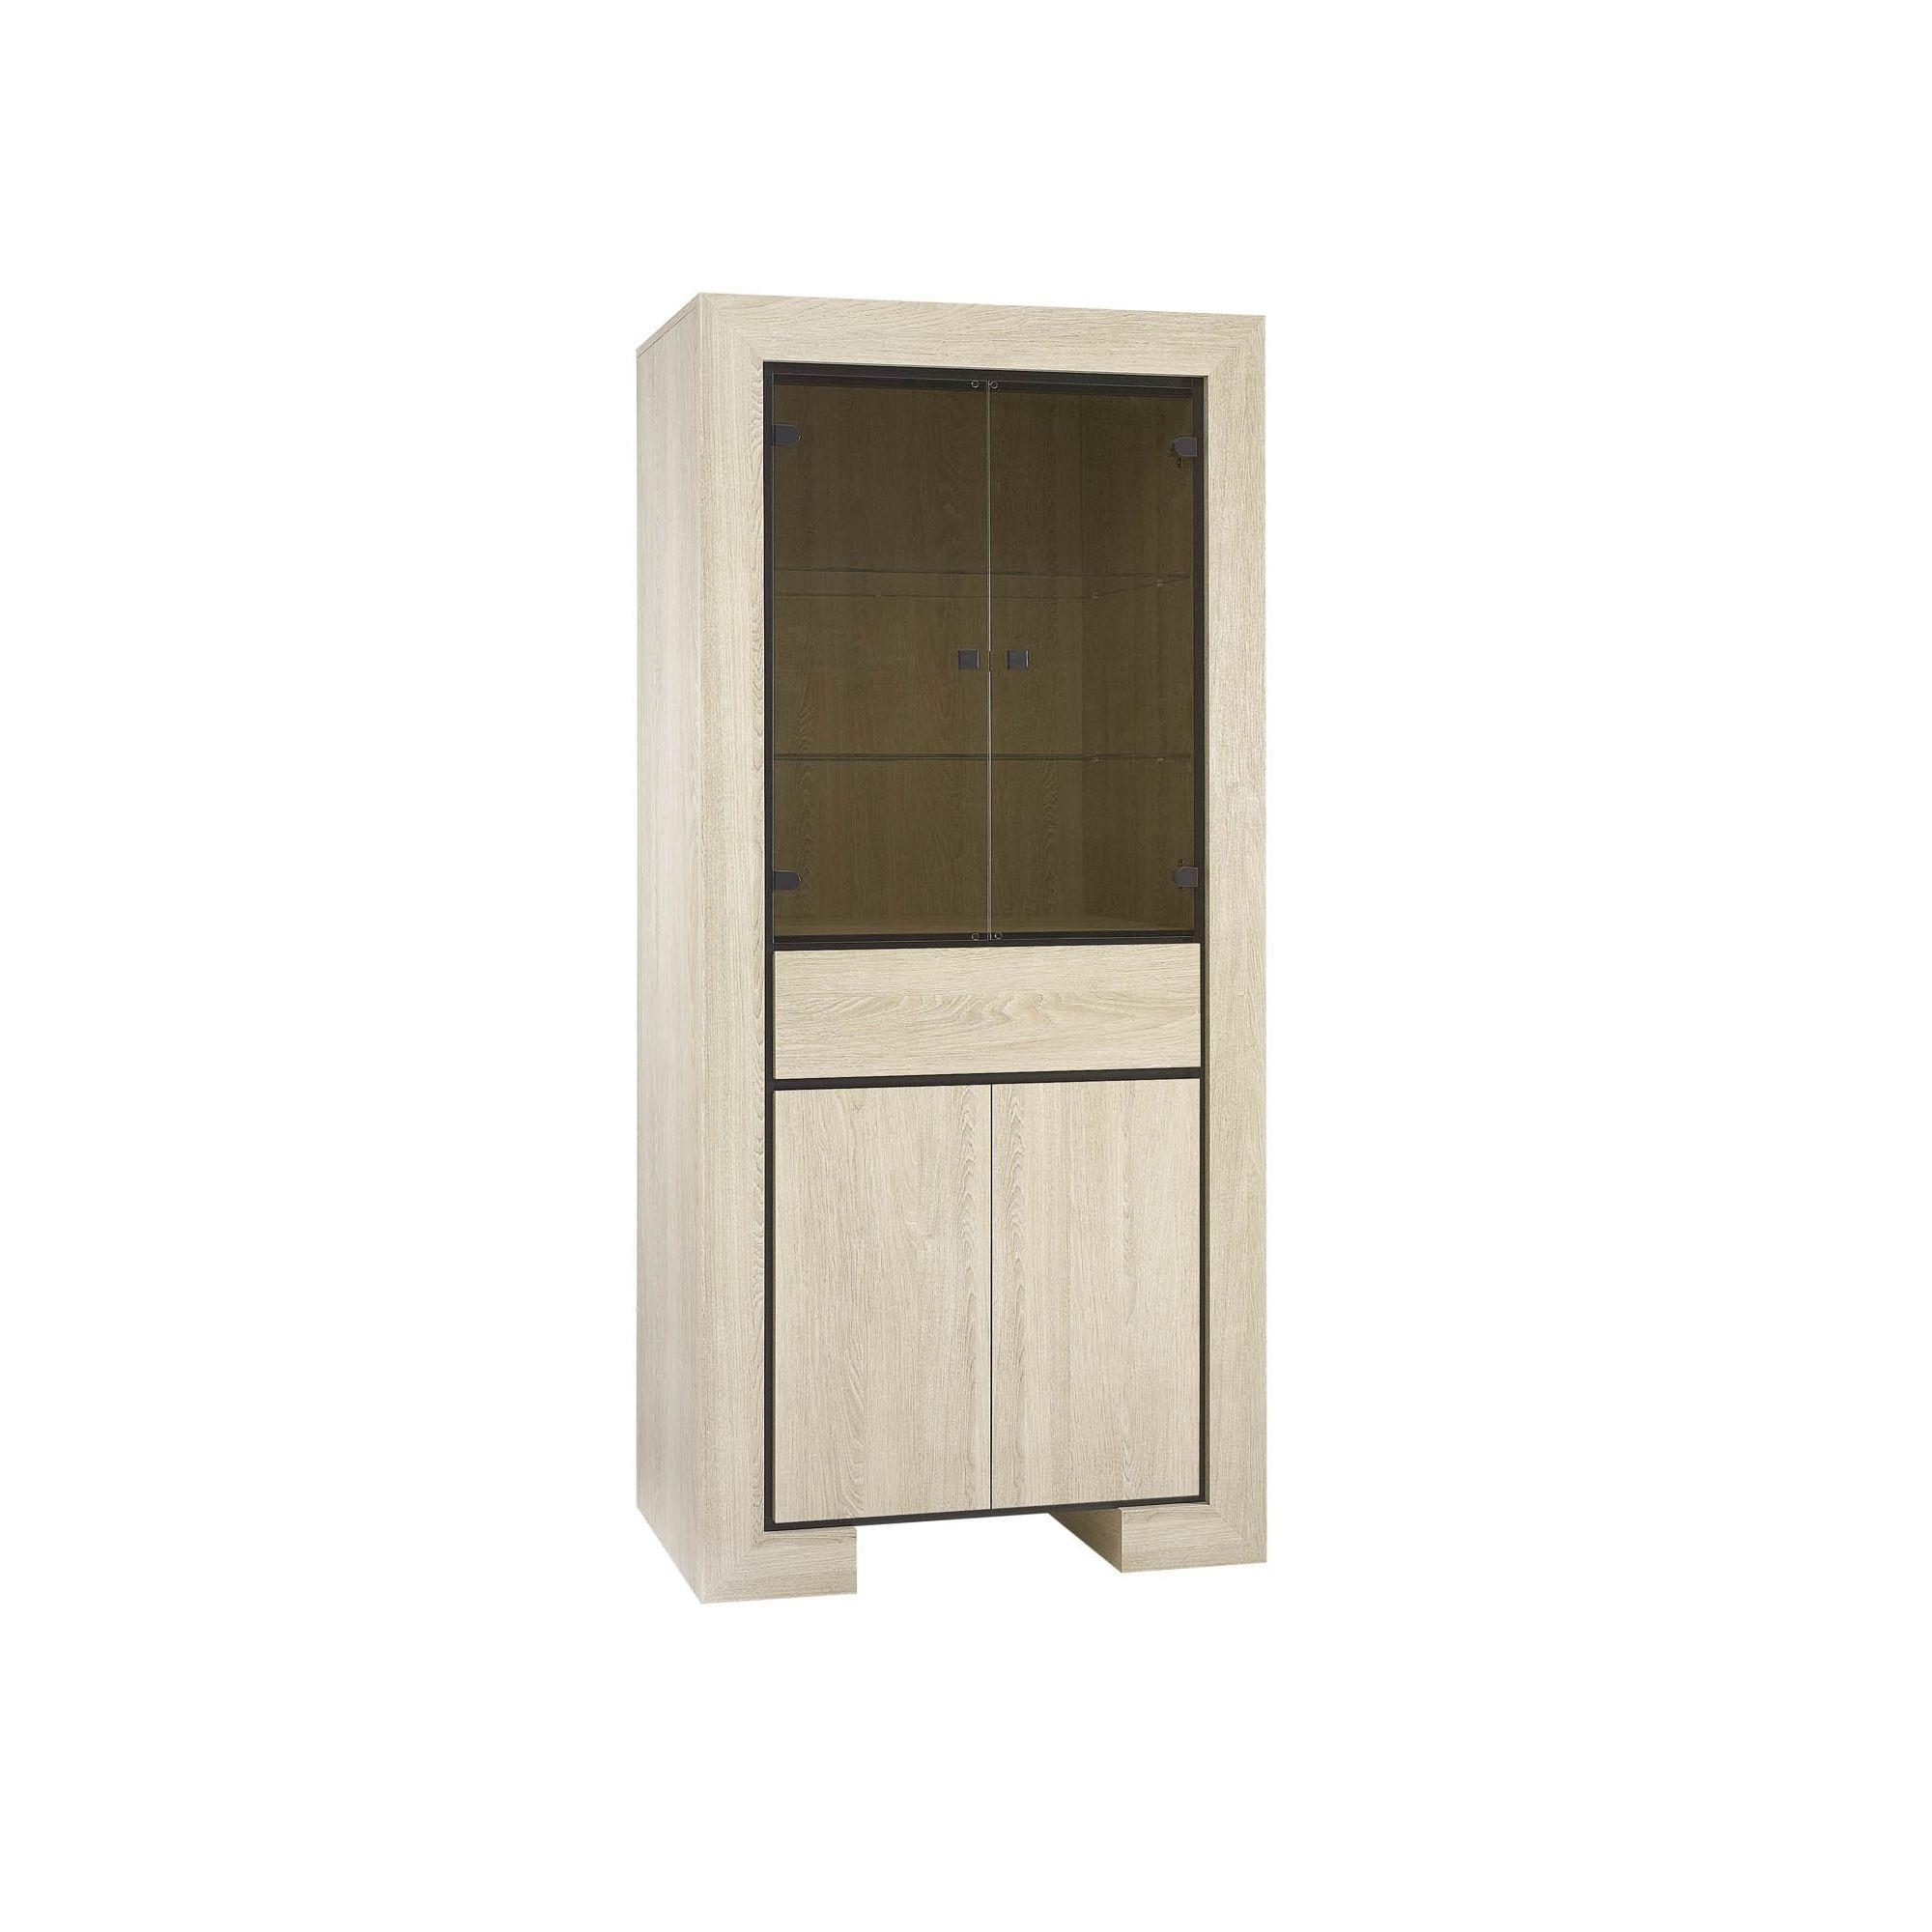 Urbane Designs Dominica Four Drawer Tall Double Display Cabinet in Oak at Tesco Direct